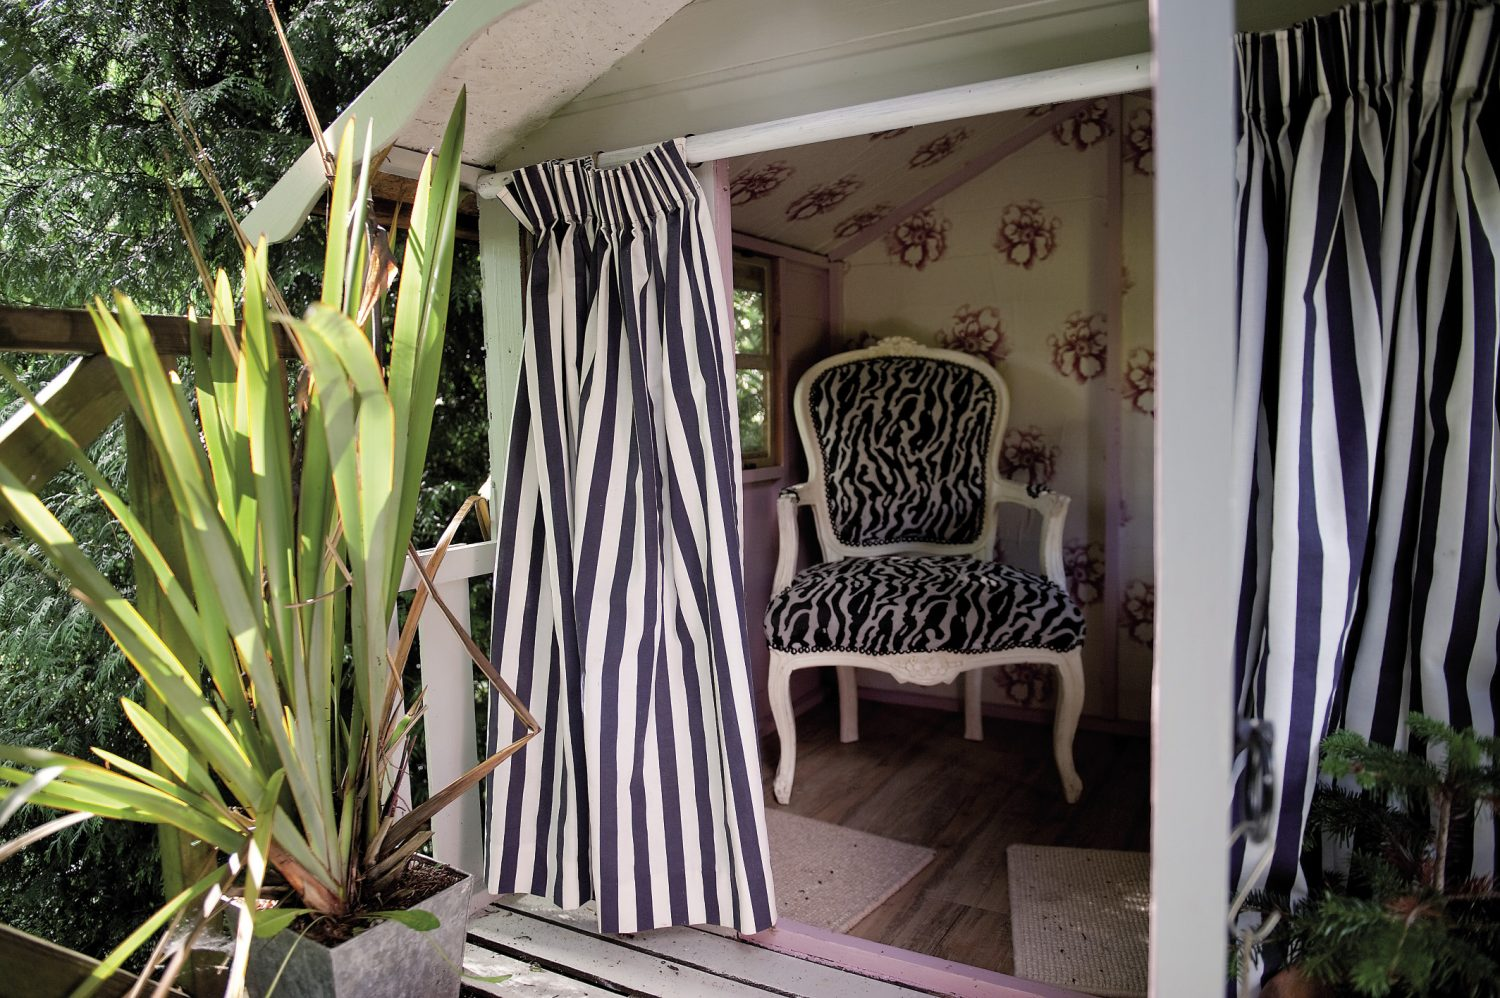 Down another set of steps and there, among the boughs of a fine oak tree is the treehouse, now painted white, with nautical blue and white striped curtains. Inside, Andrew has wallpapered it and added just one, throne-like chair